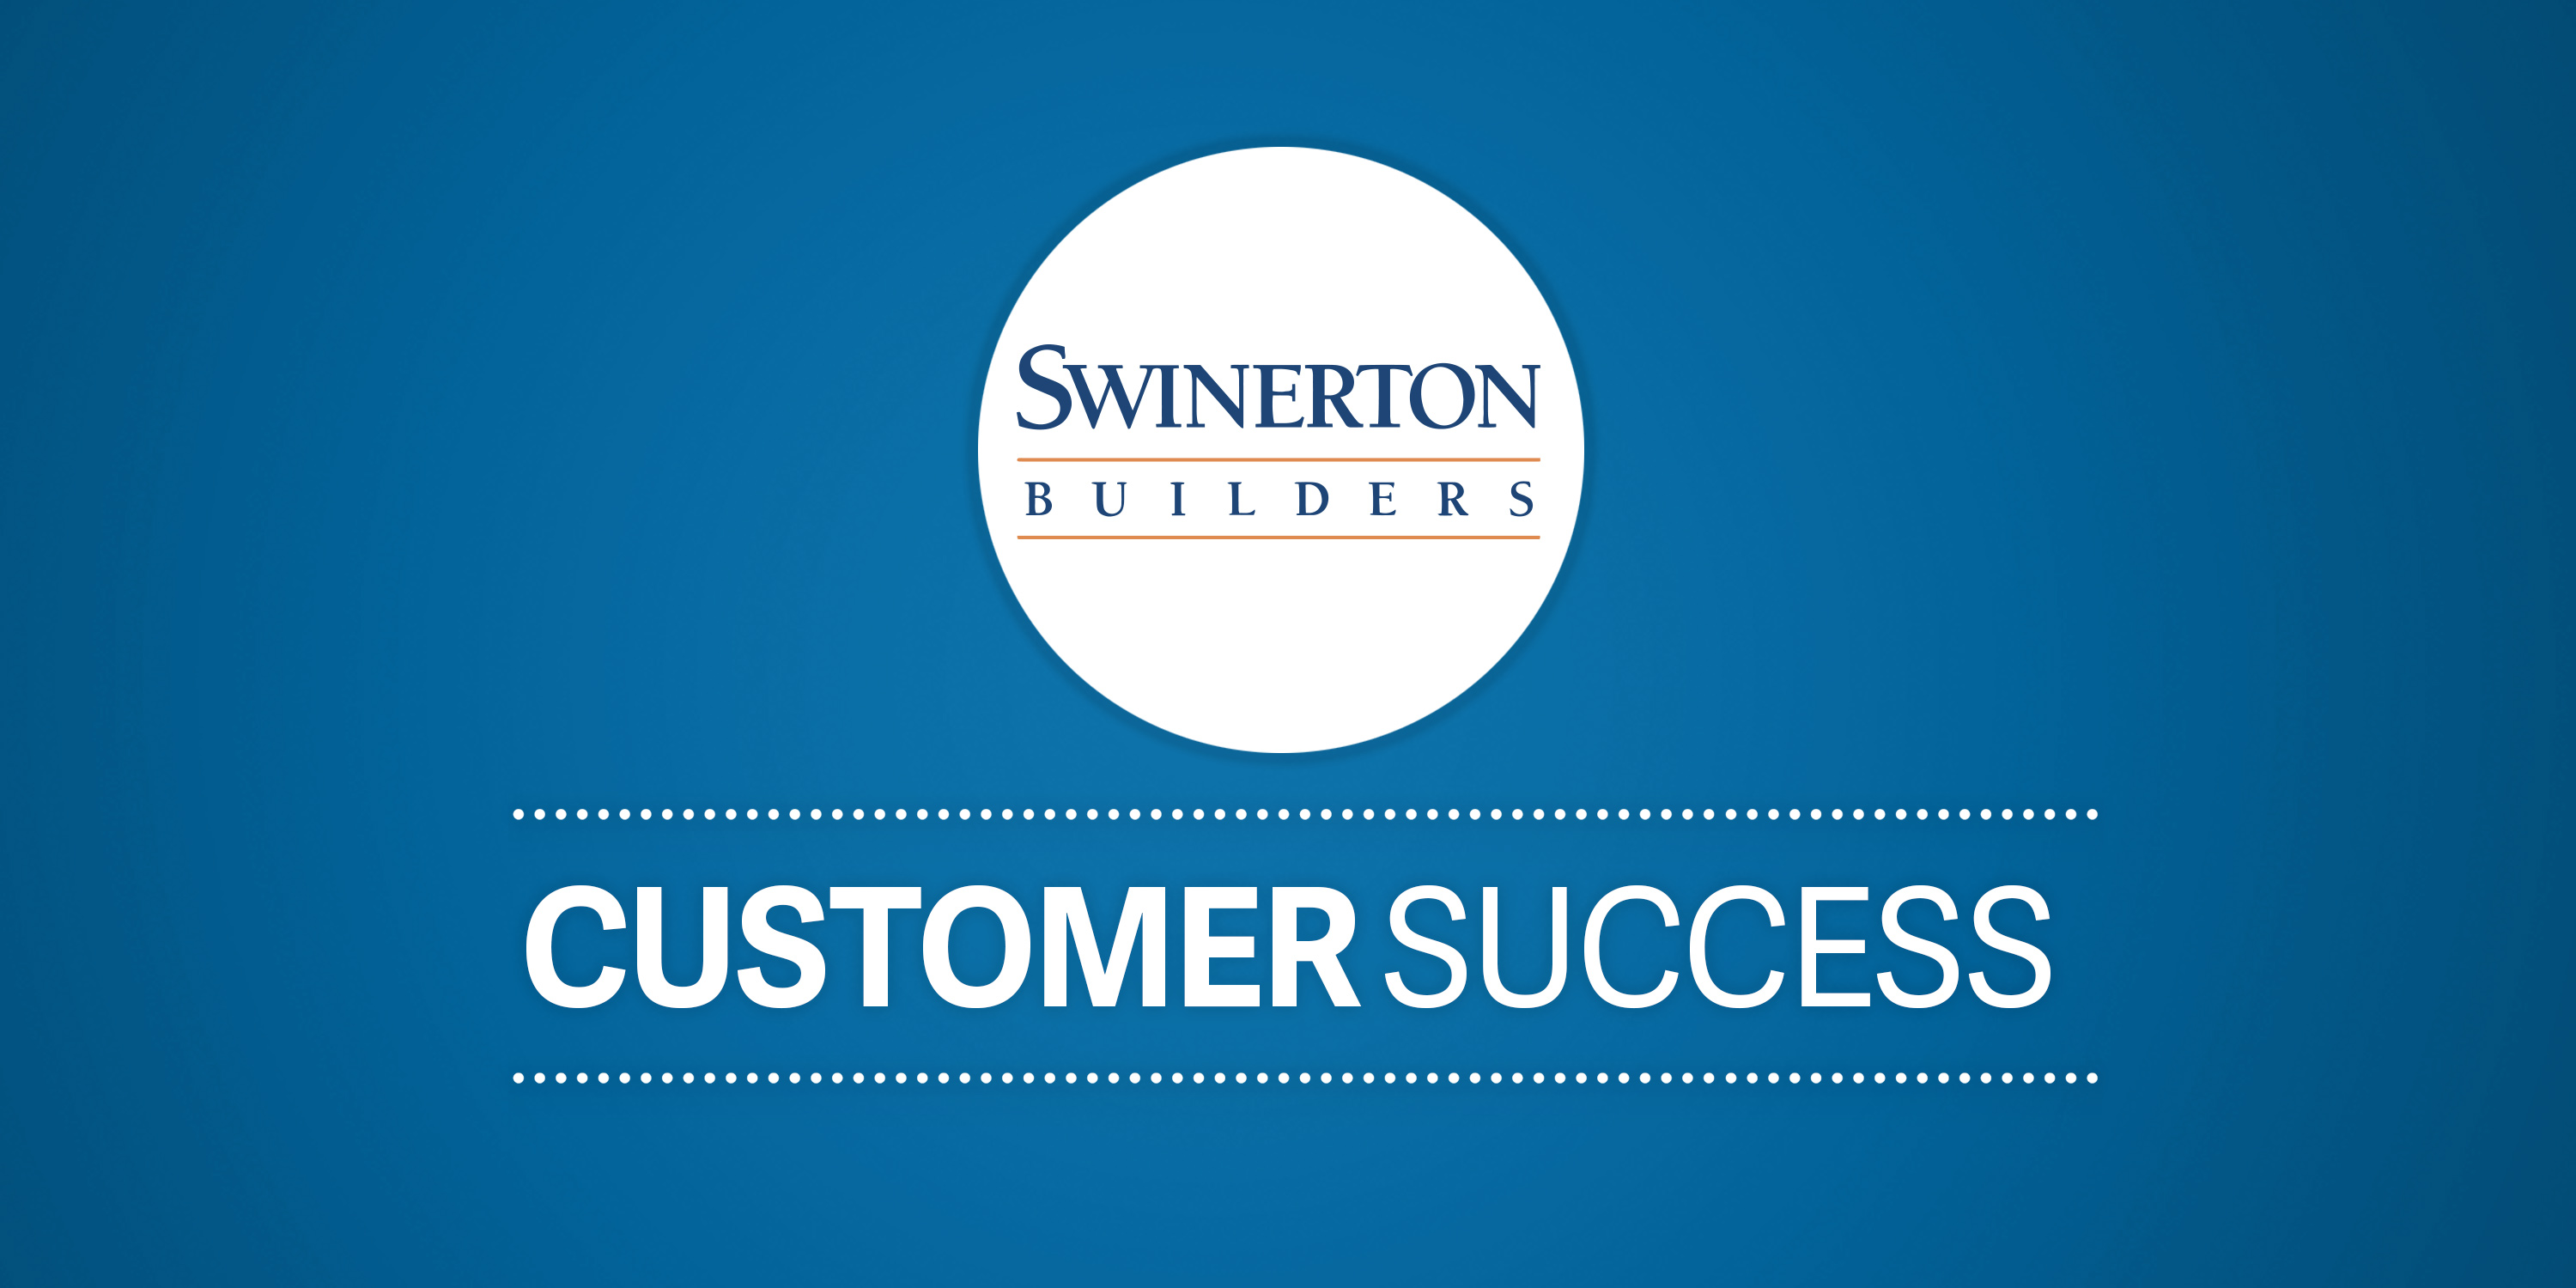 Case Study: Swinerton Builders